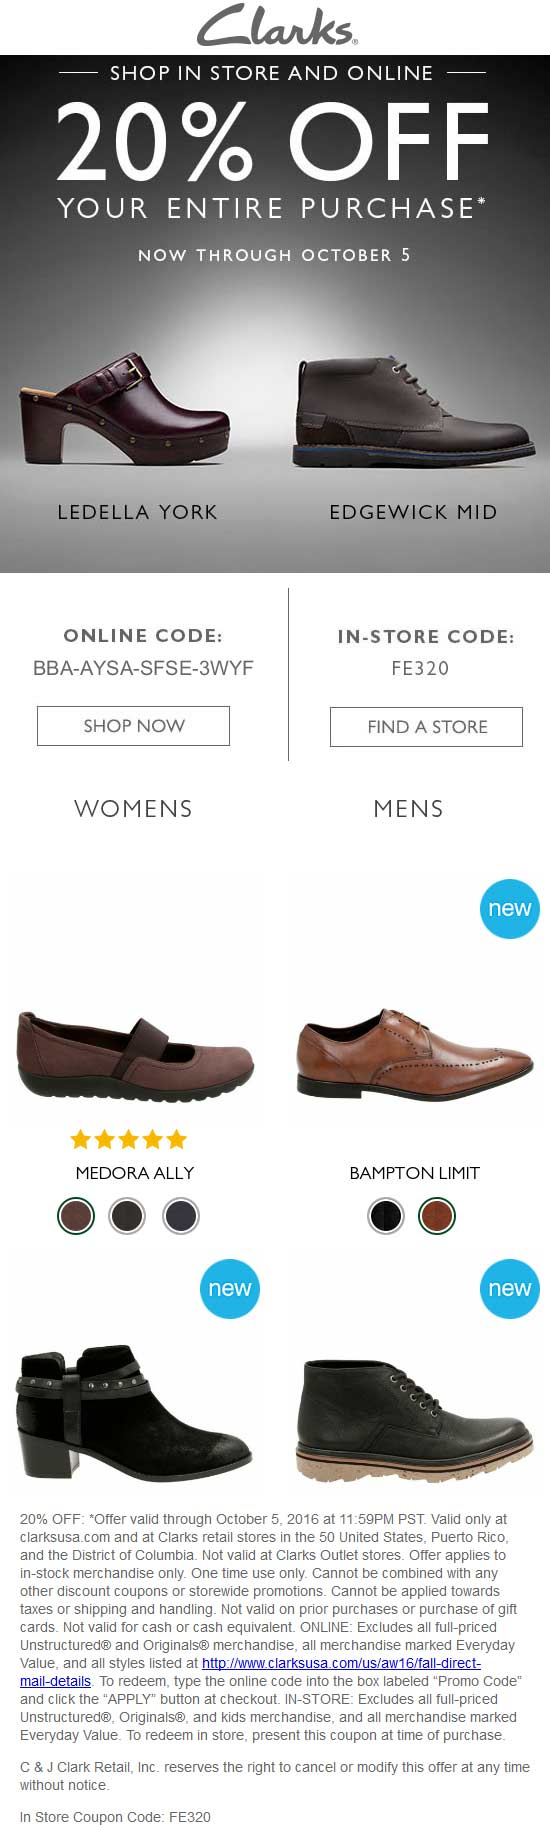 Clarks Coupon March 2017 20% off at Clarks shoes, or online via promo code BBA-AYSA-SFSE-3WYF